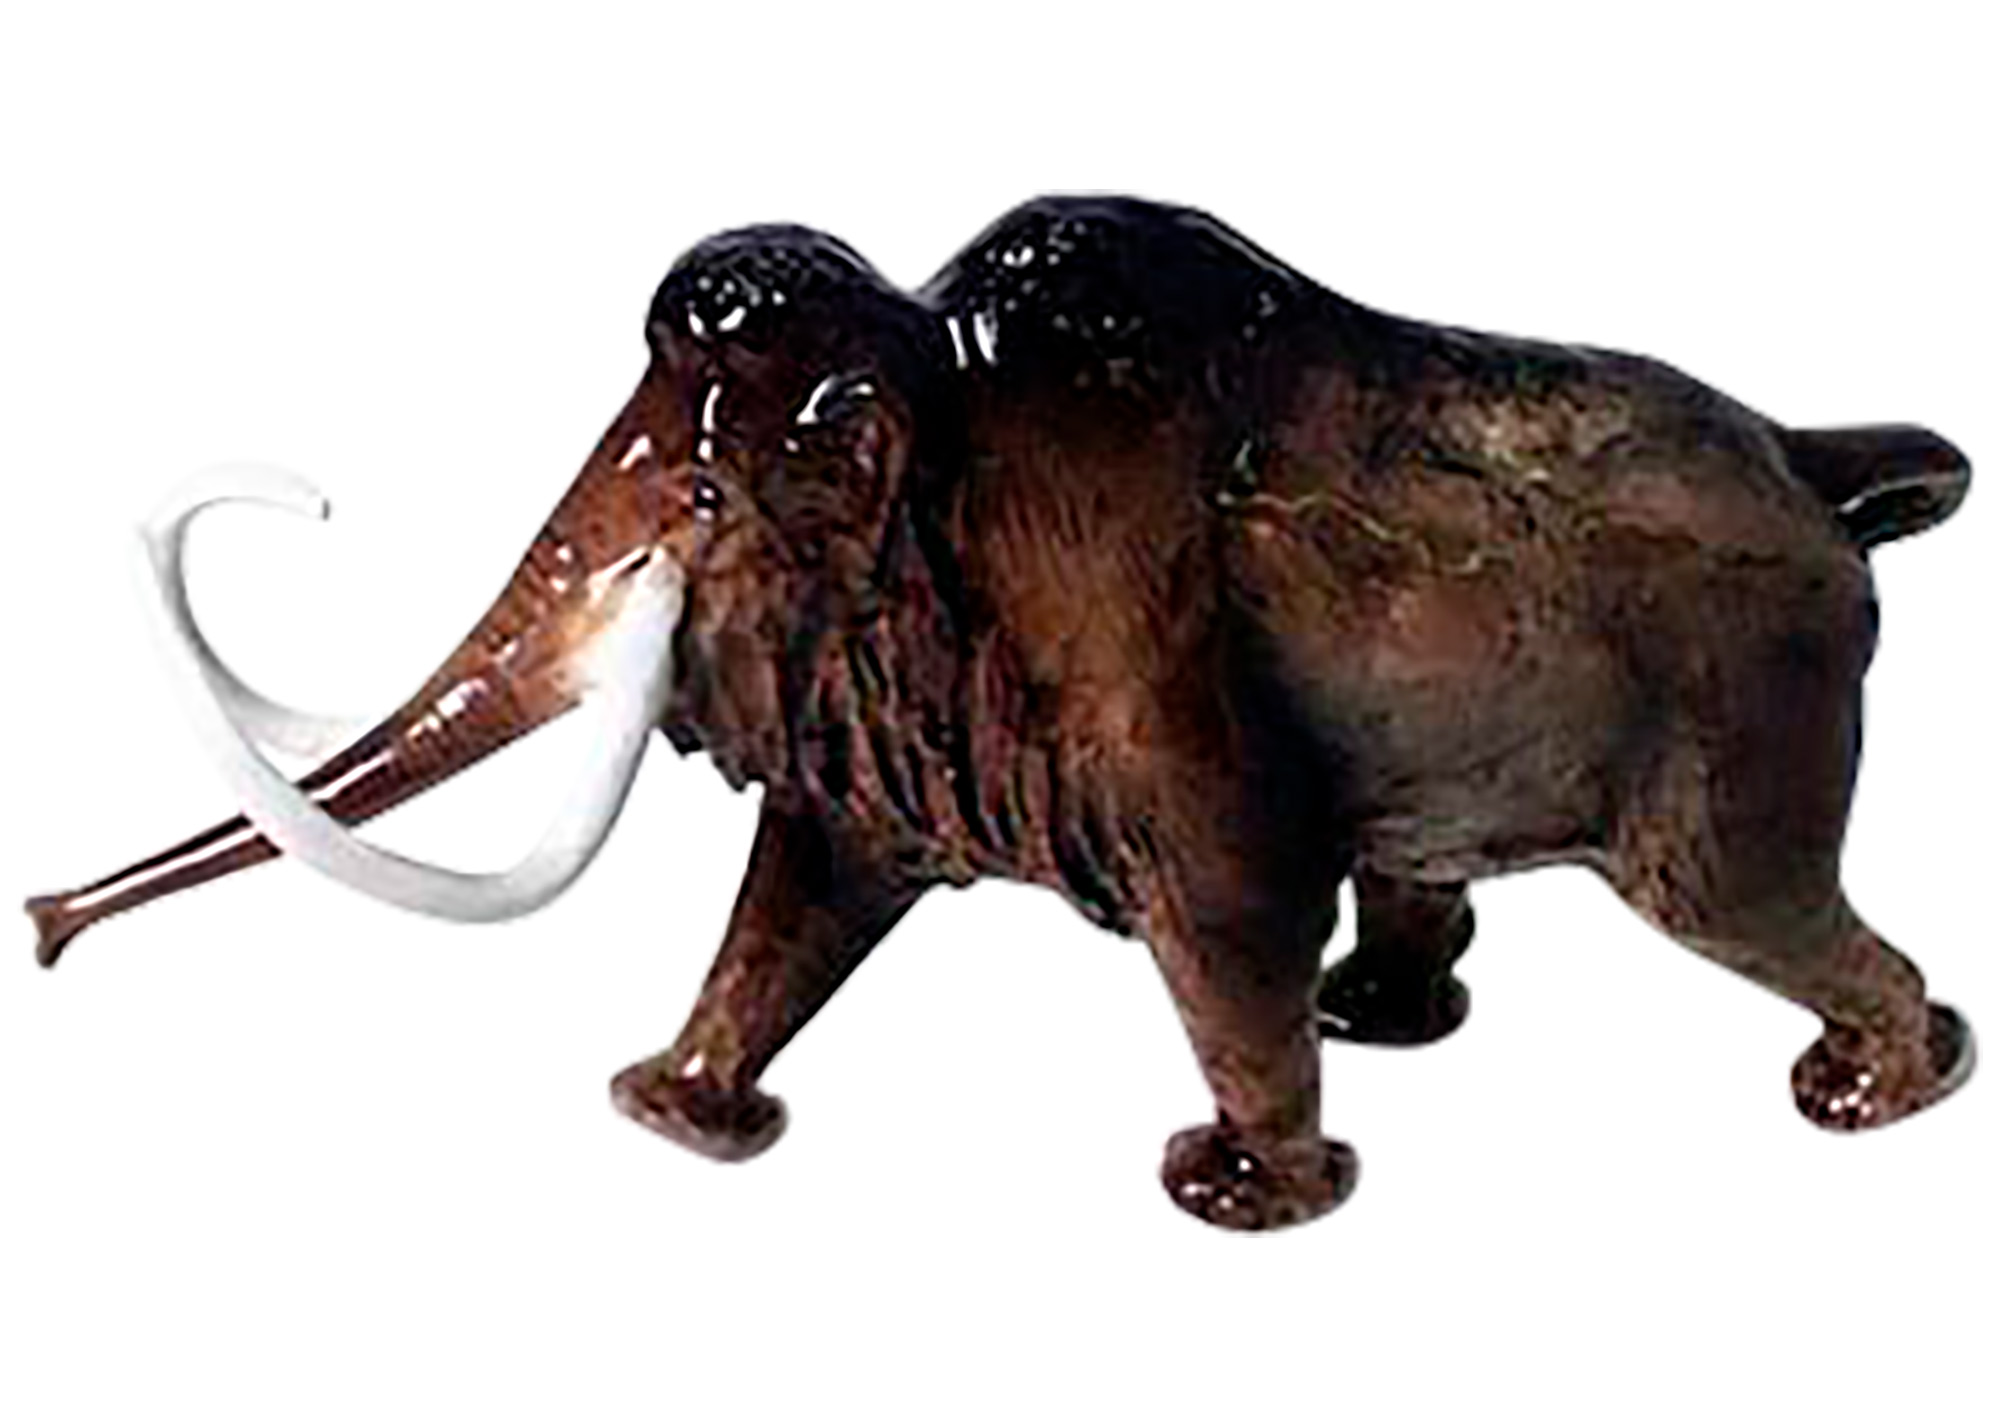 Buy Wooly Mammoth Figurine at GoldenCockerel.com